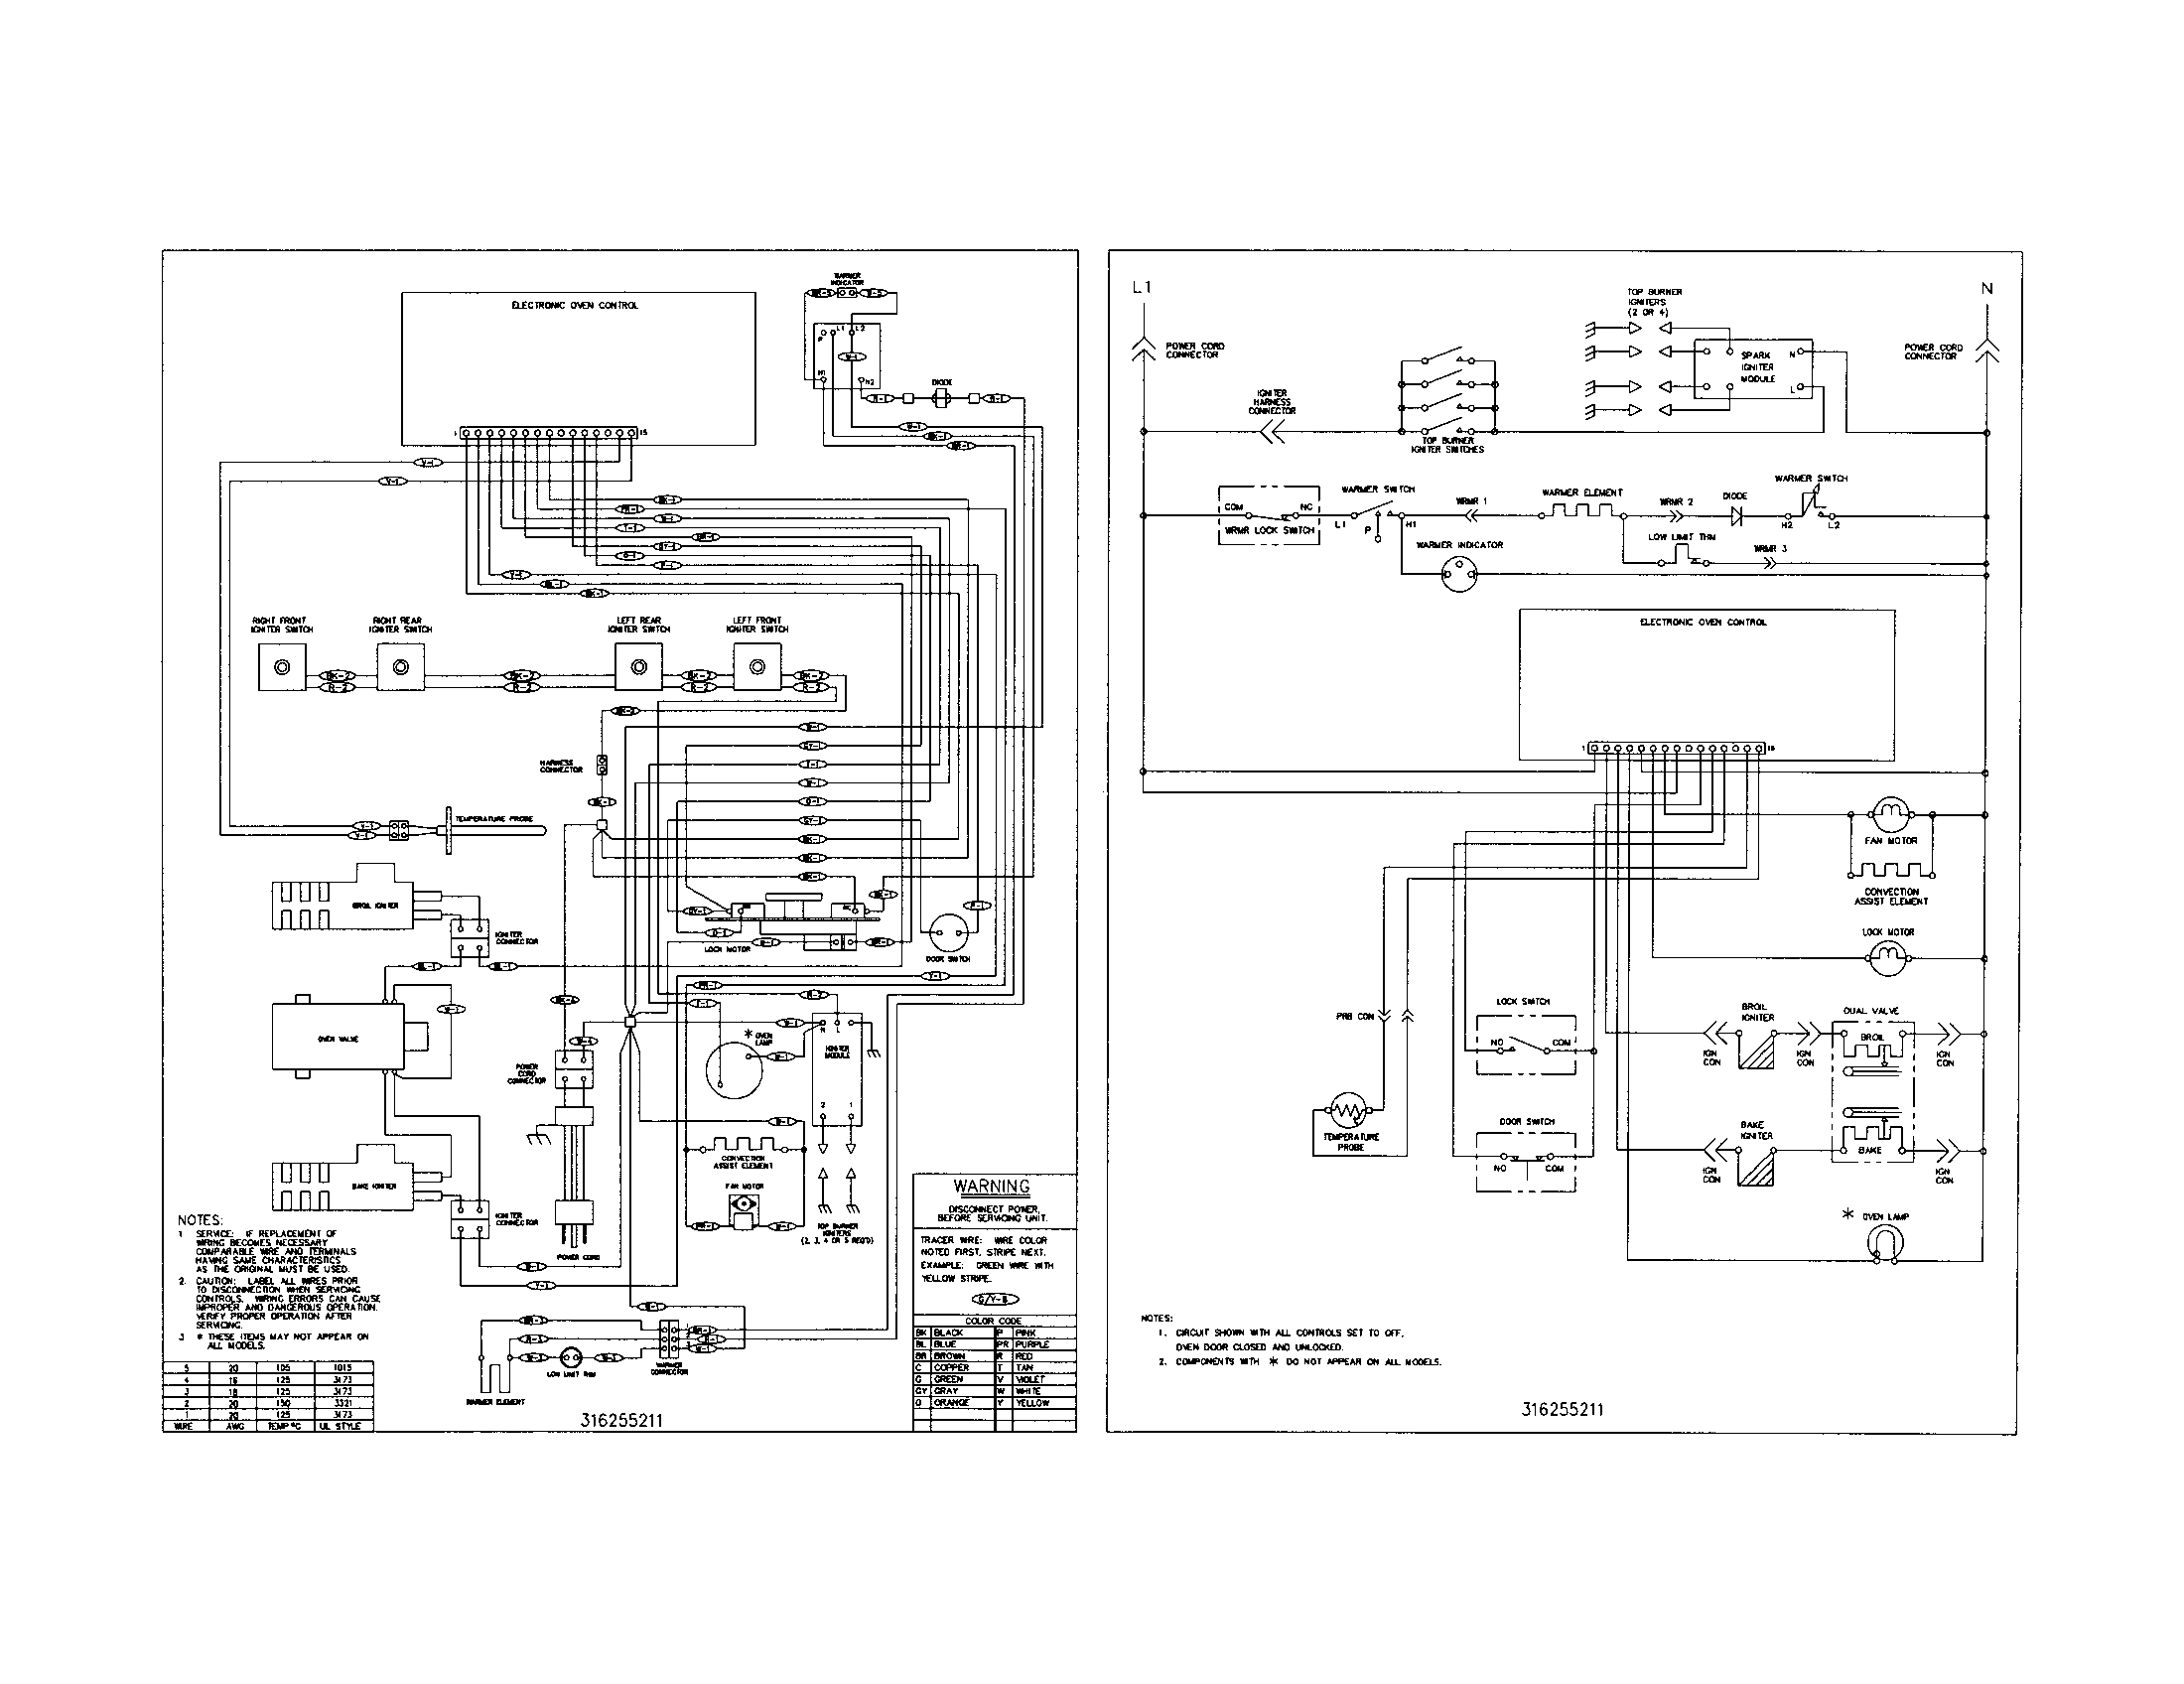 whirlpool dishwasher motor wiring diagram #7 Danby Dishwasher Wiring Diagram whirlpool dishwasher motor wiring diagram